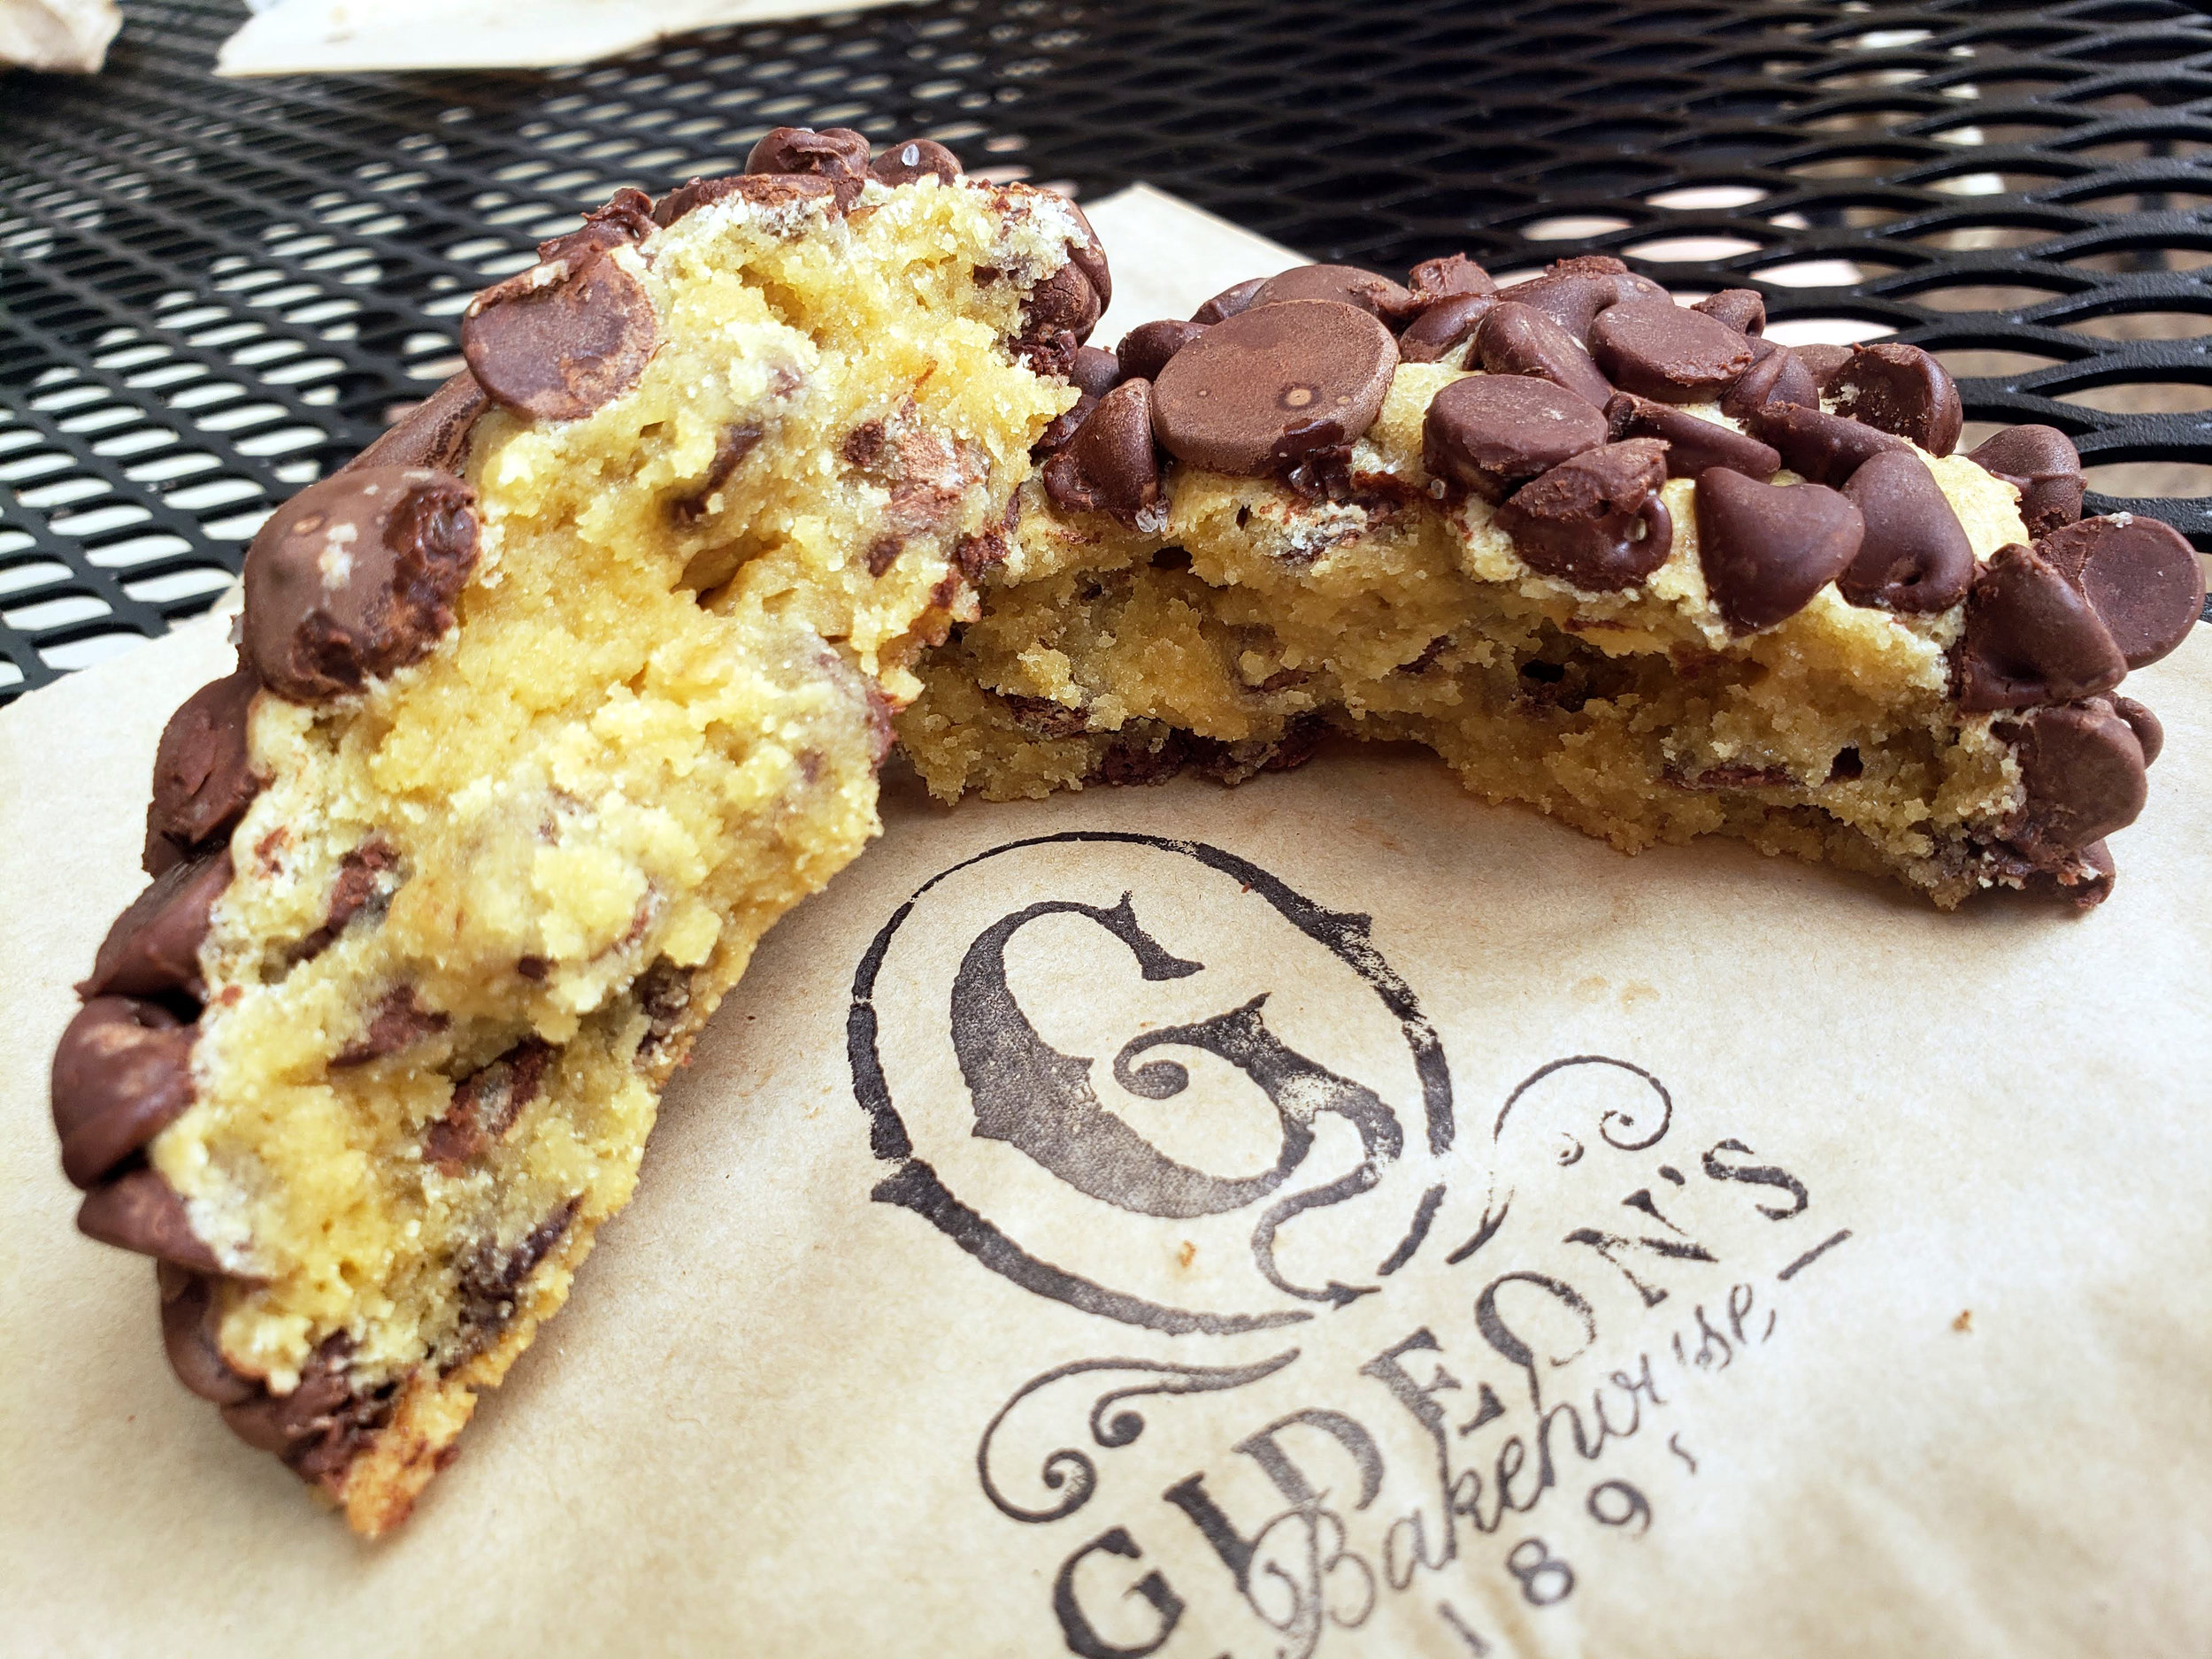 The Gideon's Bakehouse cookie is undercooked to perfection.